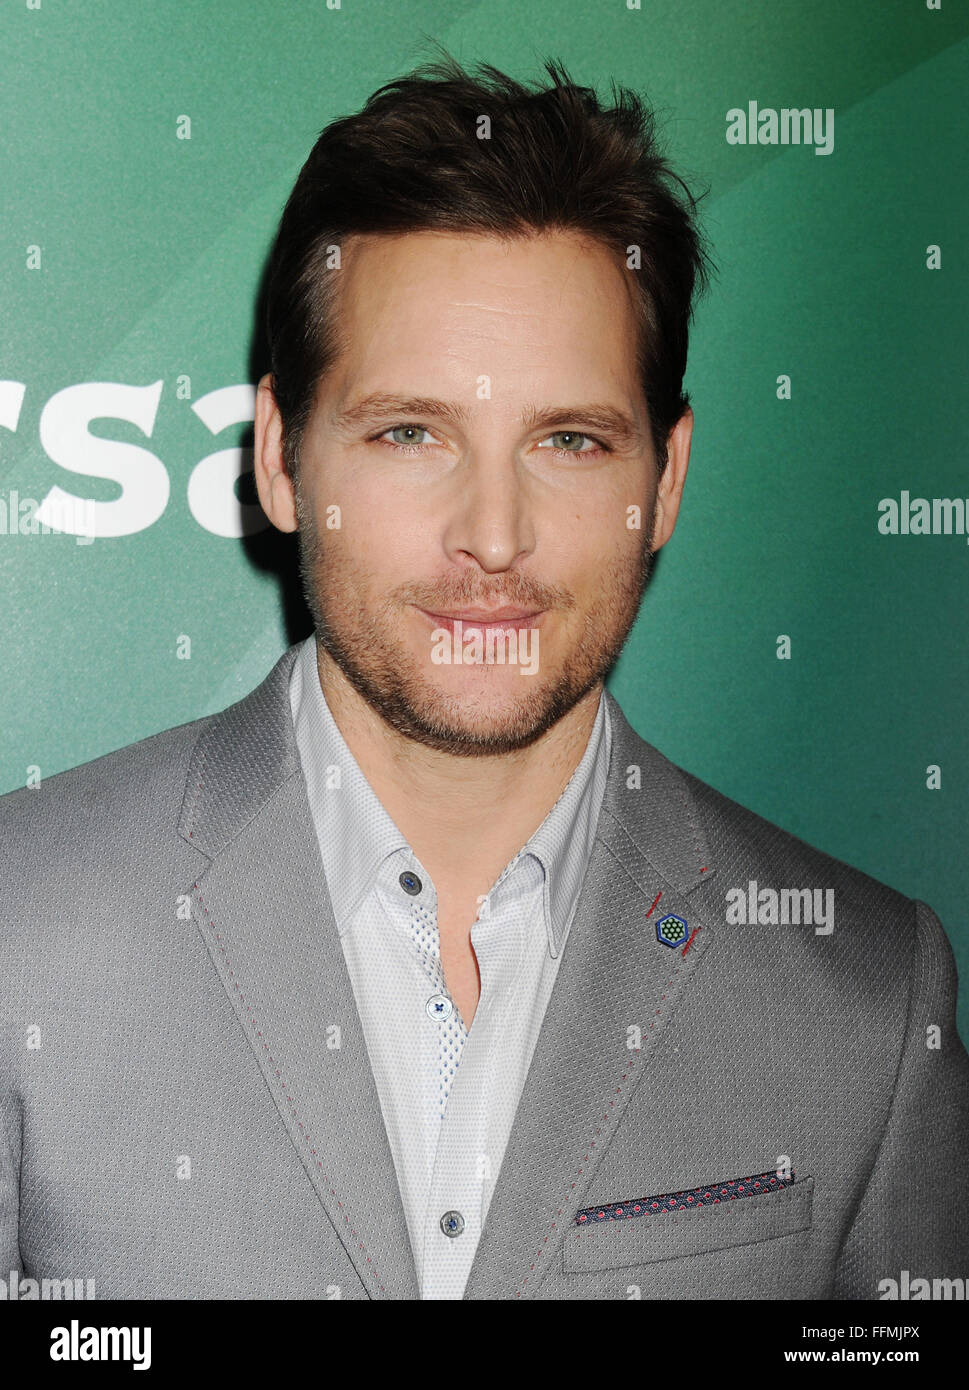 Actor Peter Facinelli attends the 2015 NBCUniversal Summer Press Day held at the The Langham Huntington Hotel and - Stock Image